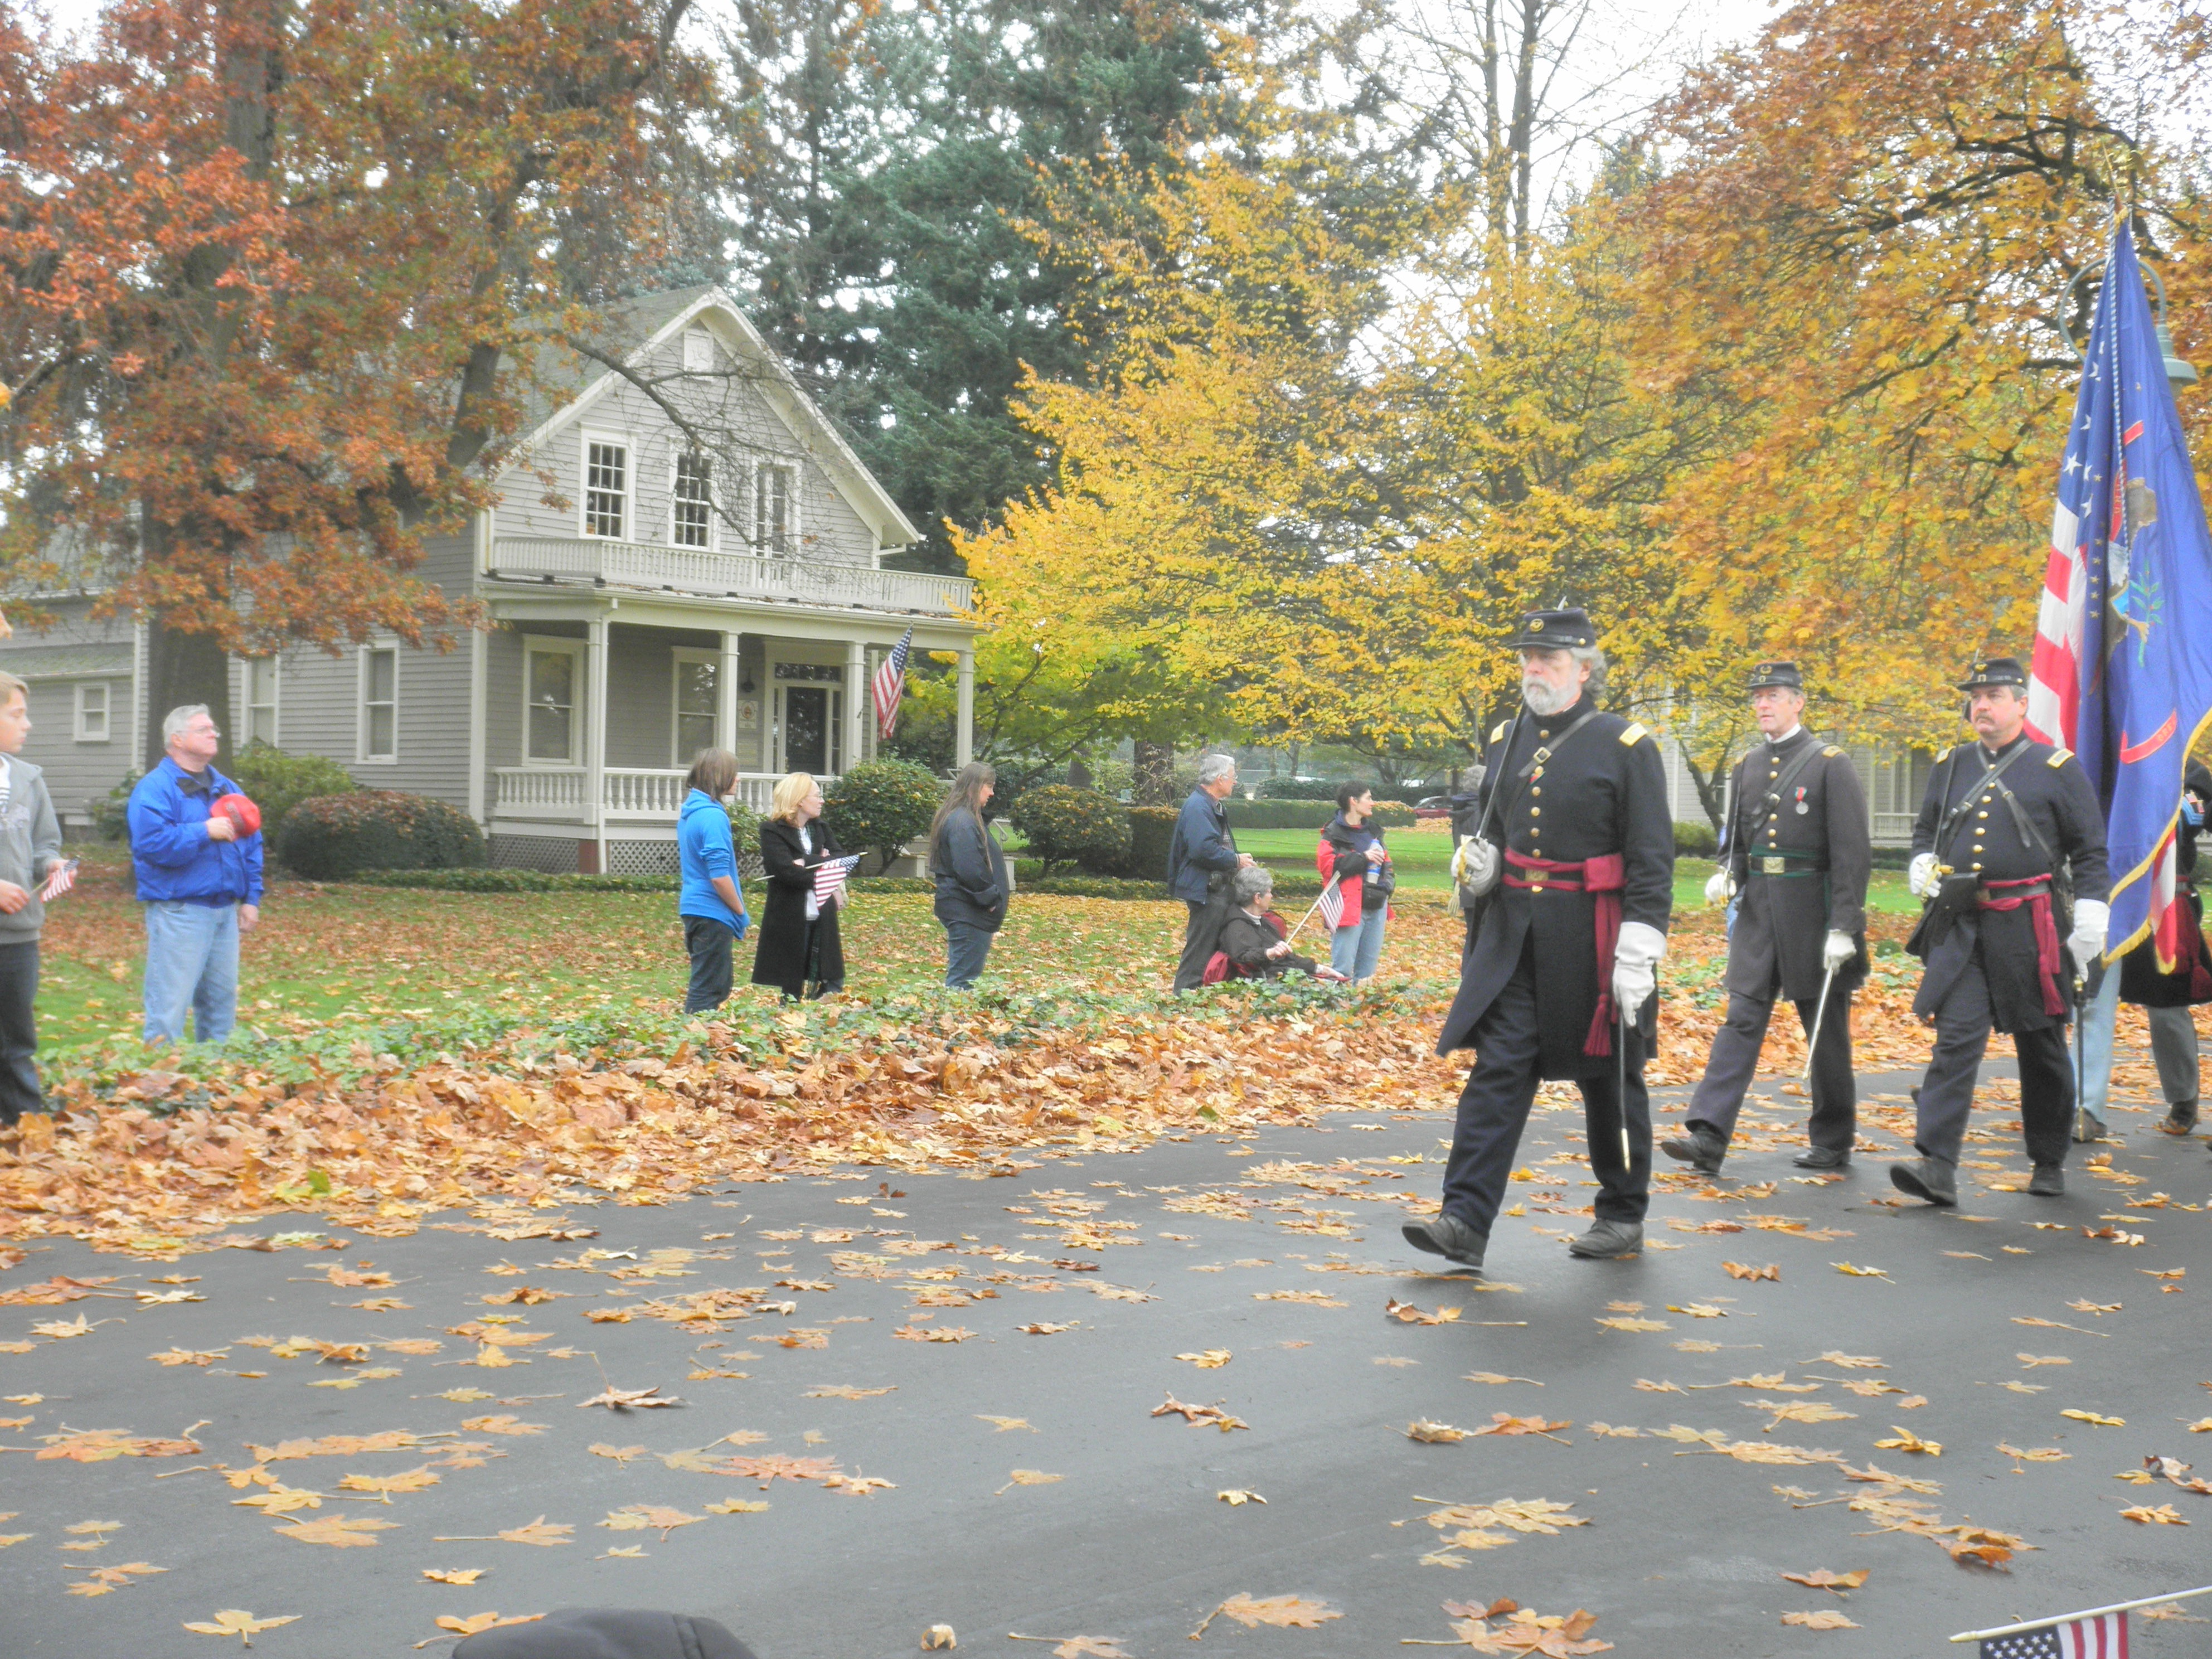 Veteran's Day parade along Officer's Row at Fort Vancouver National Historic Site